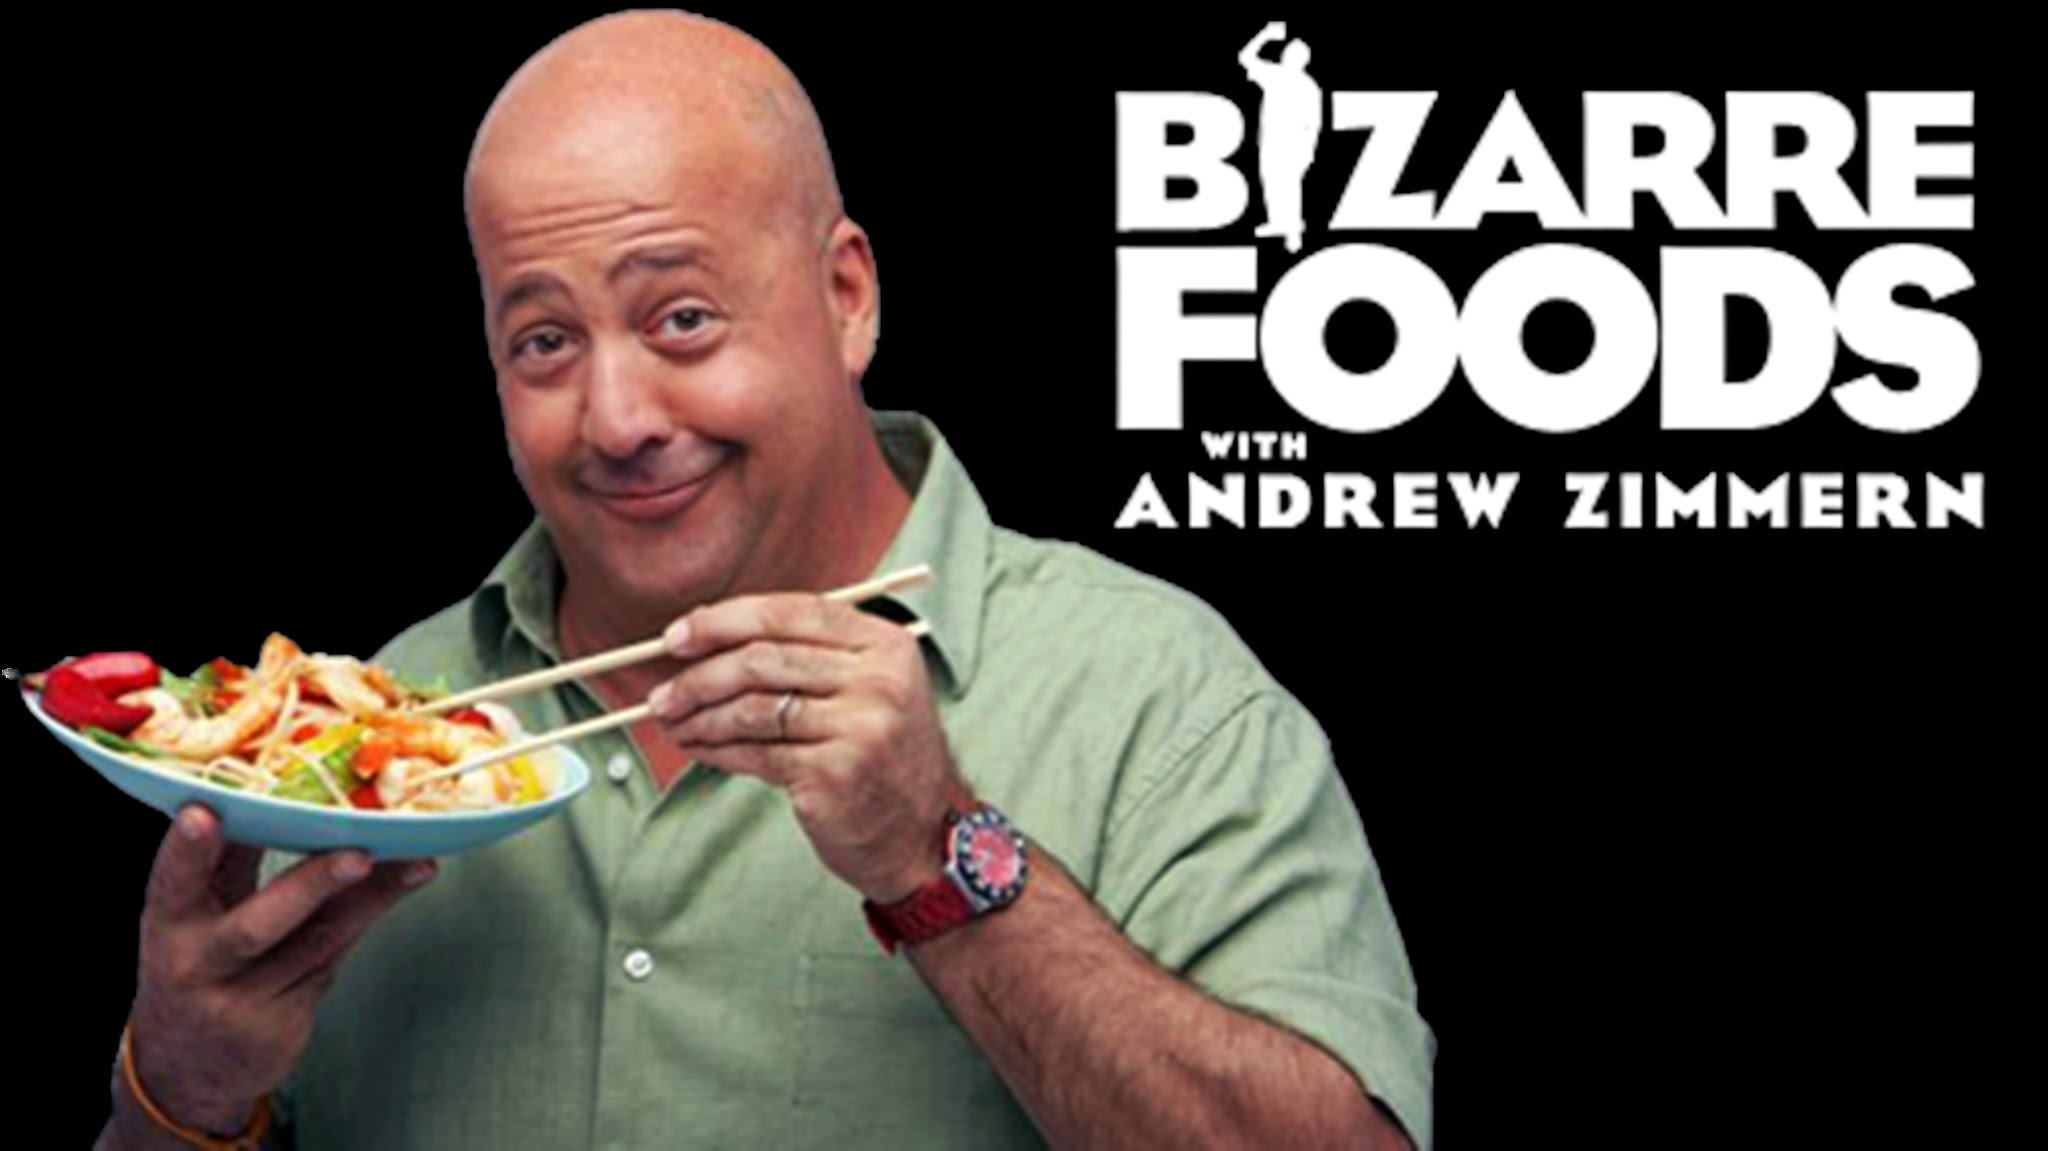 Bizarre Foods With Andrew Zimmern: Season 16